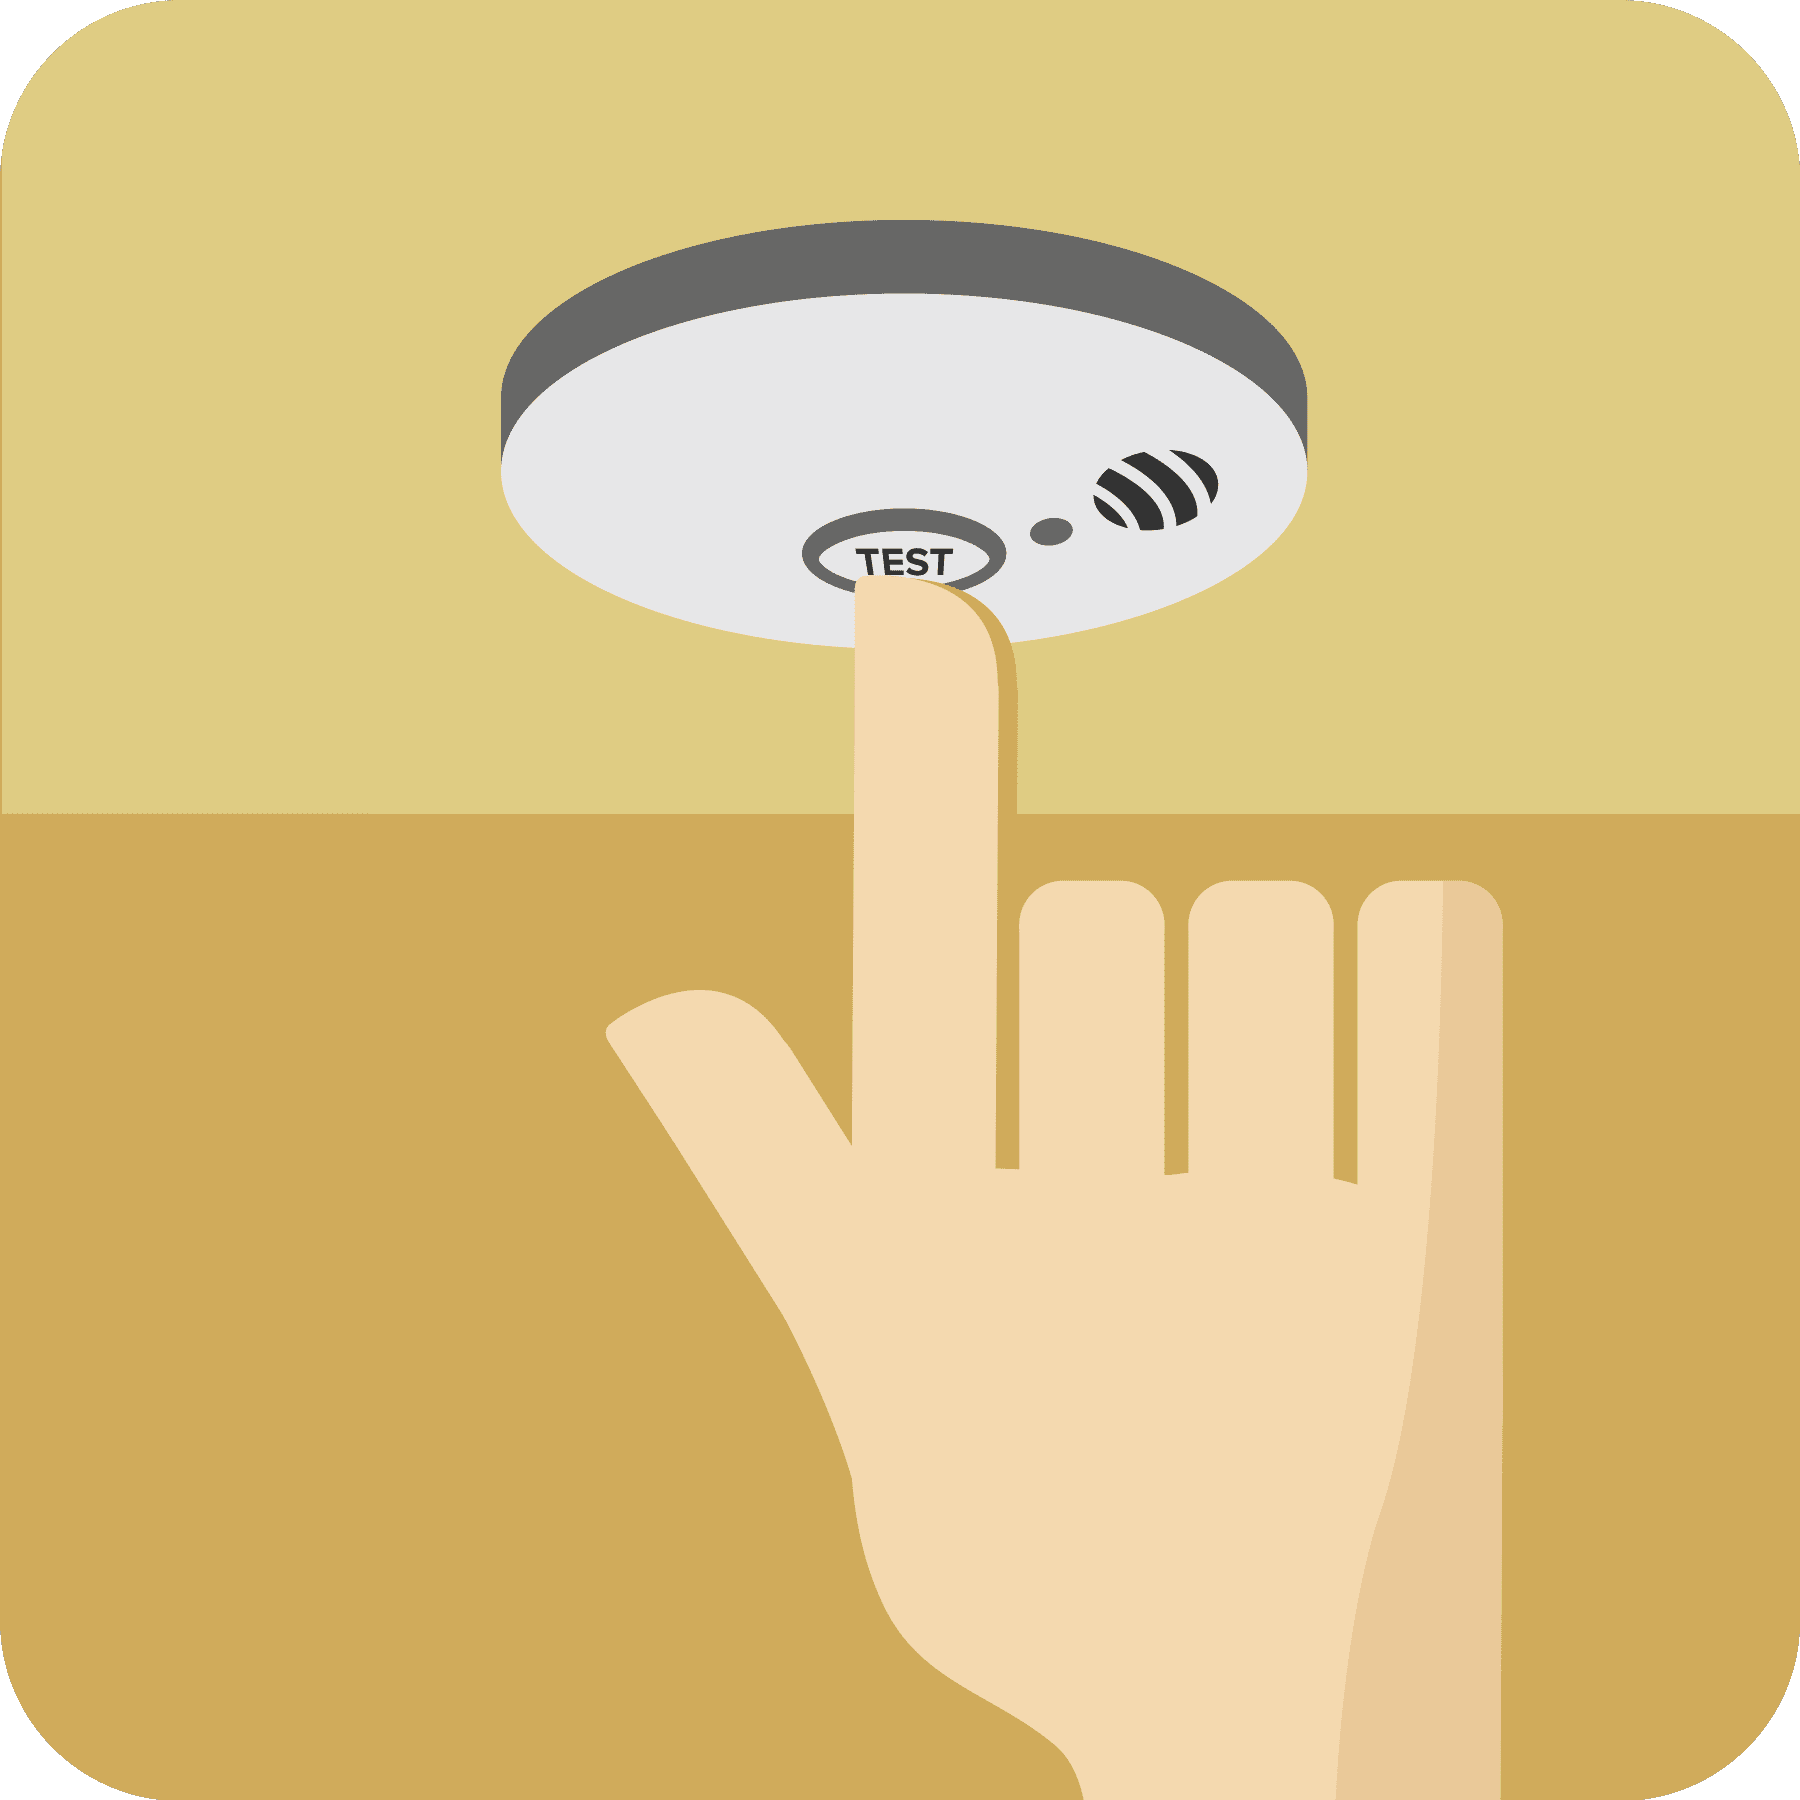 A finger pressing the test button on a smoke alarm.